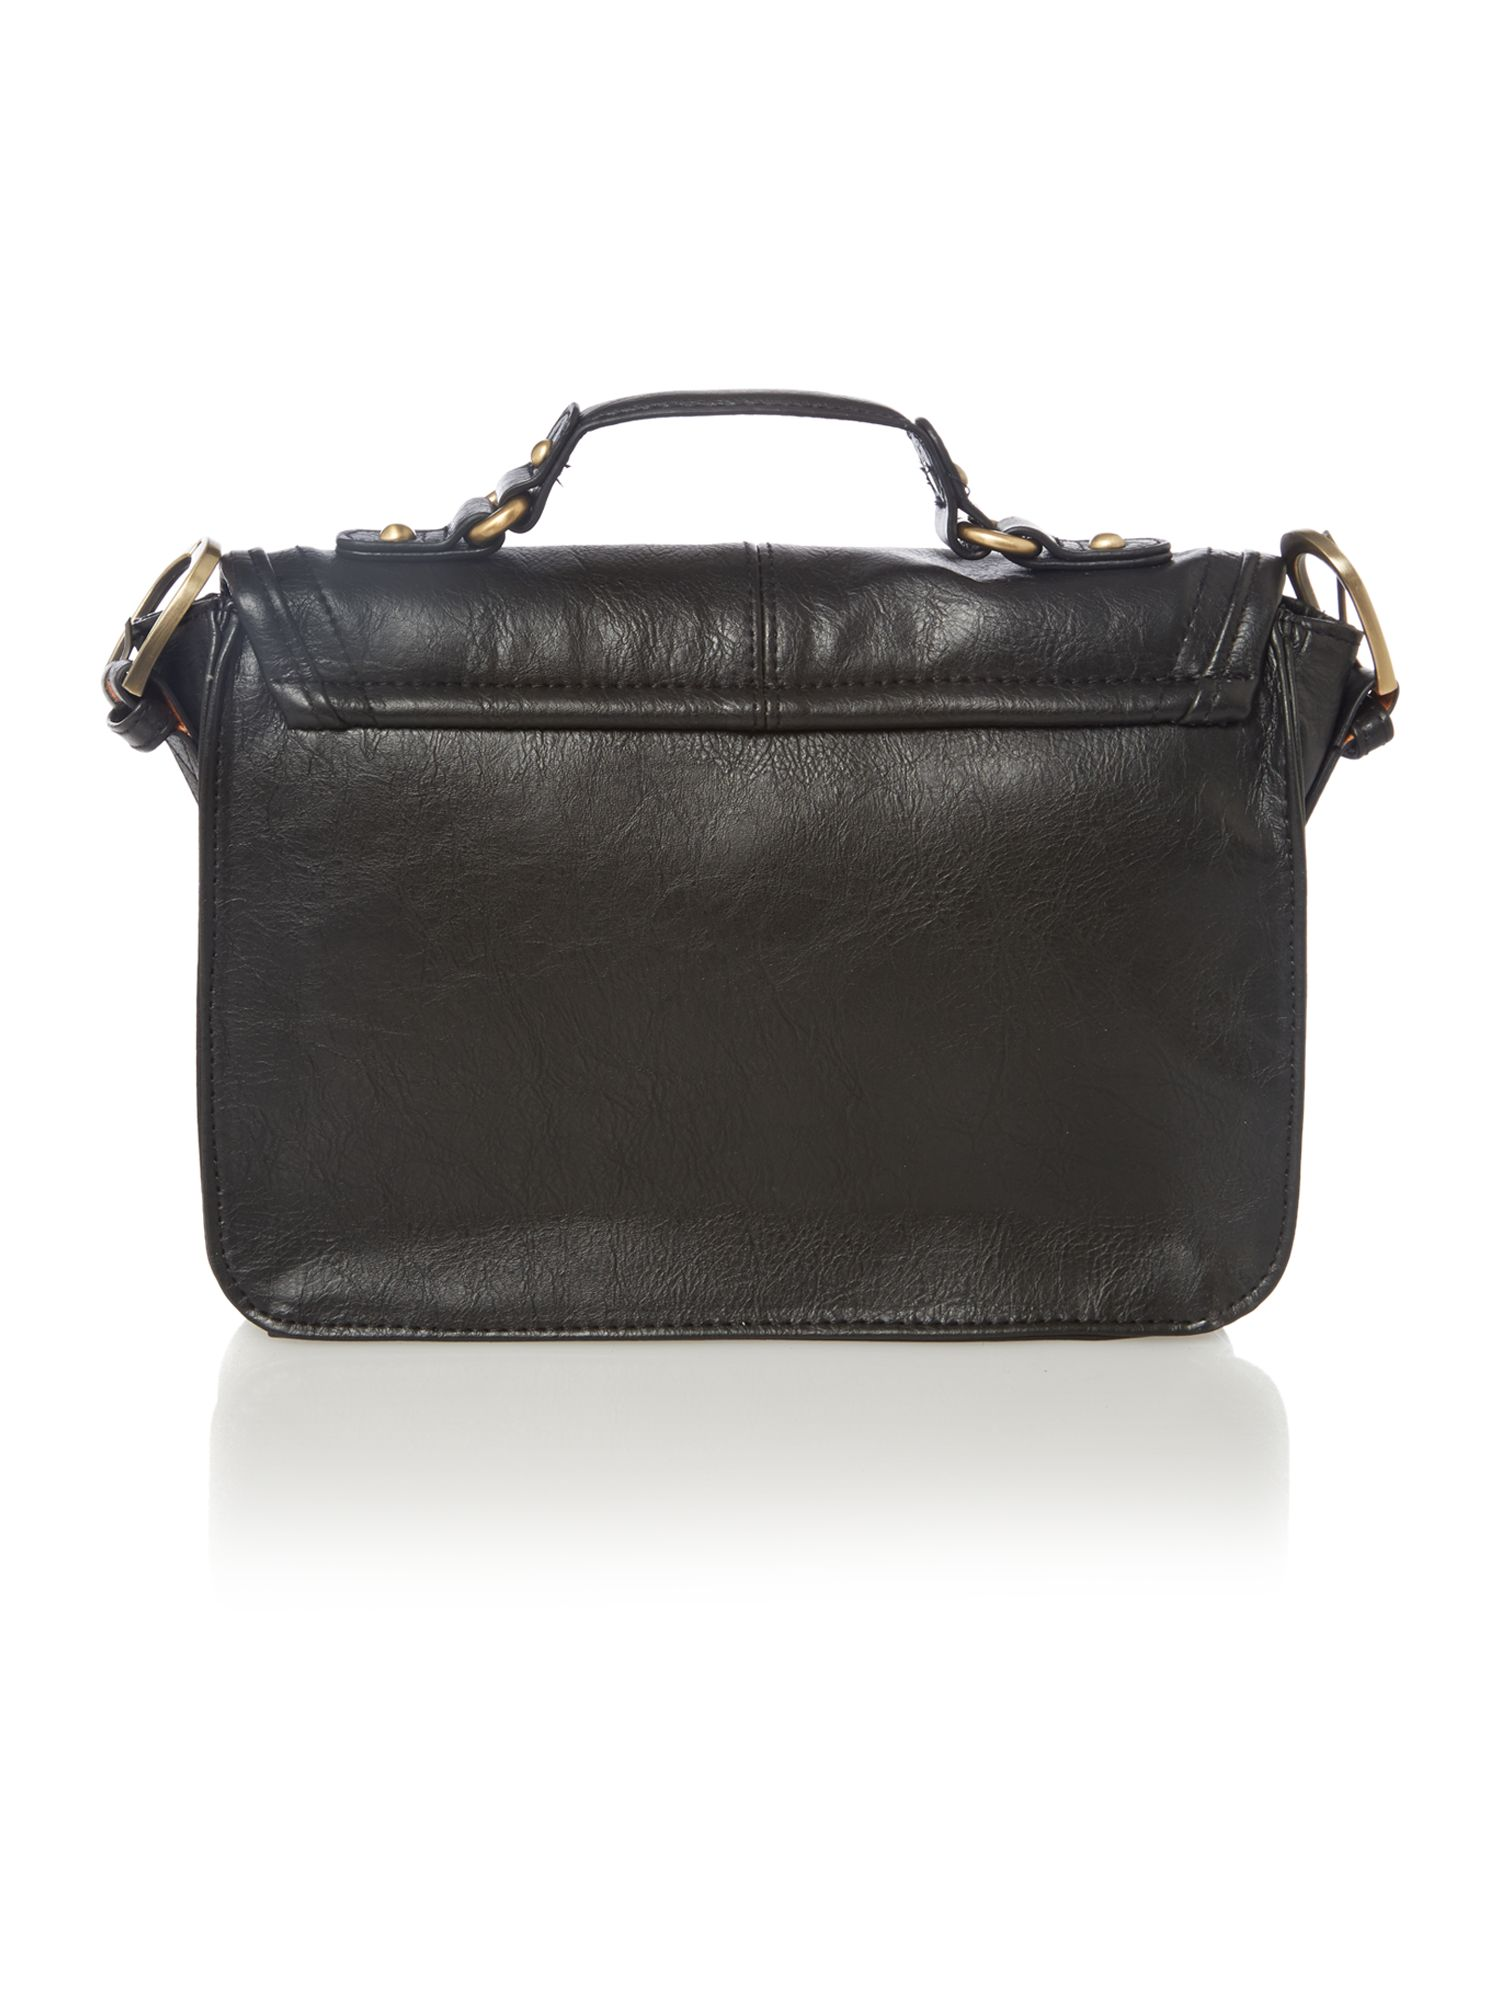 Georgie black mini satchel bag